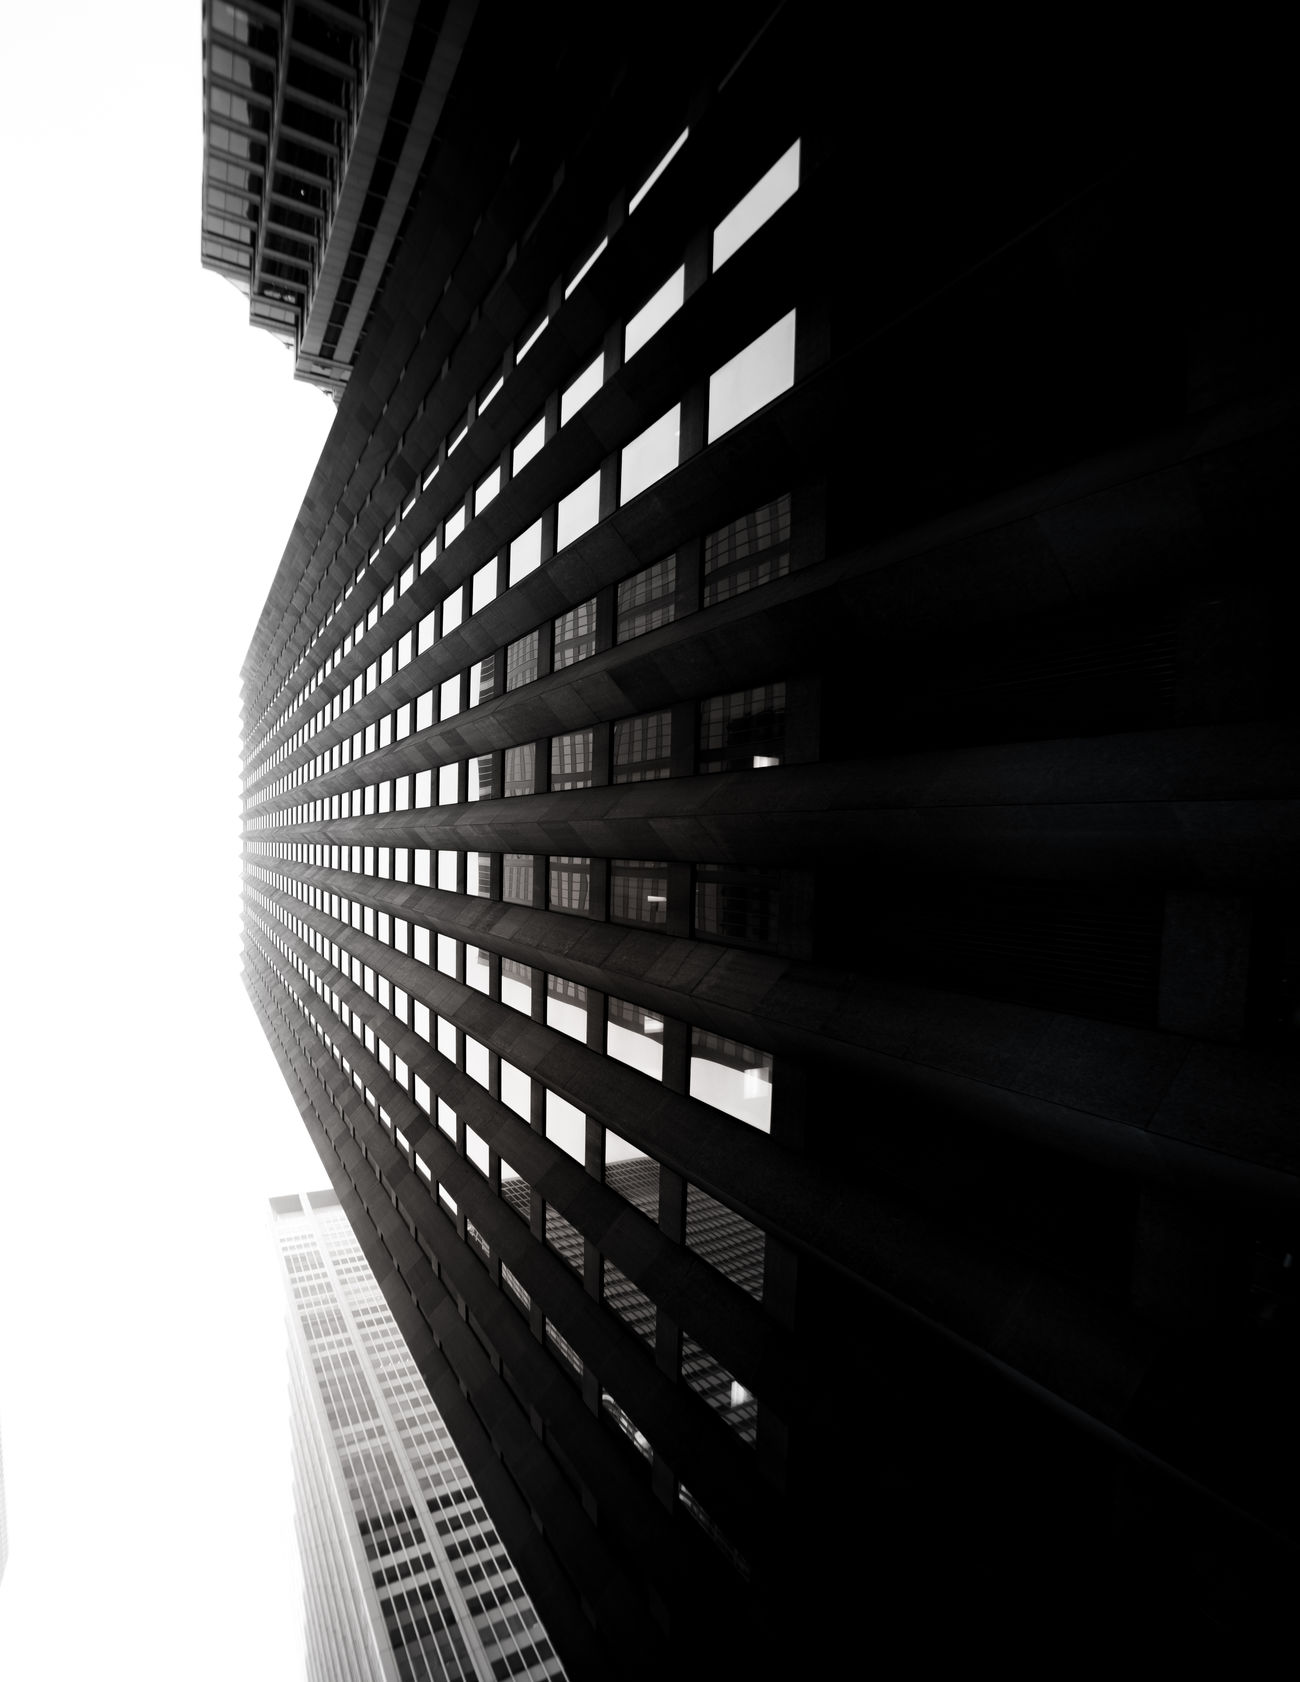 Perspective Architecture Blackandwhite Building Exterior Built Structure City Cityscape Day Growth Modern No People Outdoors Skyscraper Strength